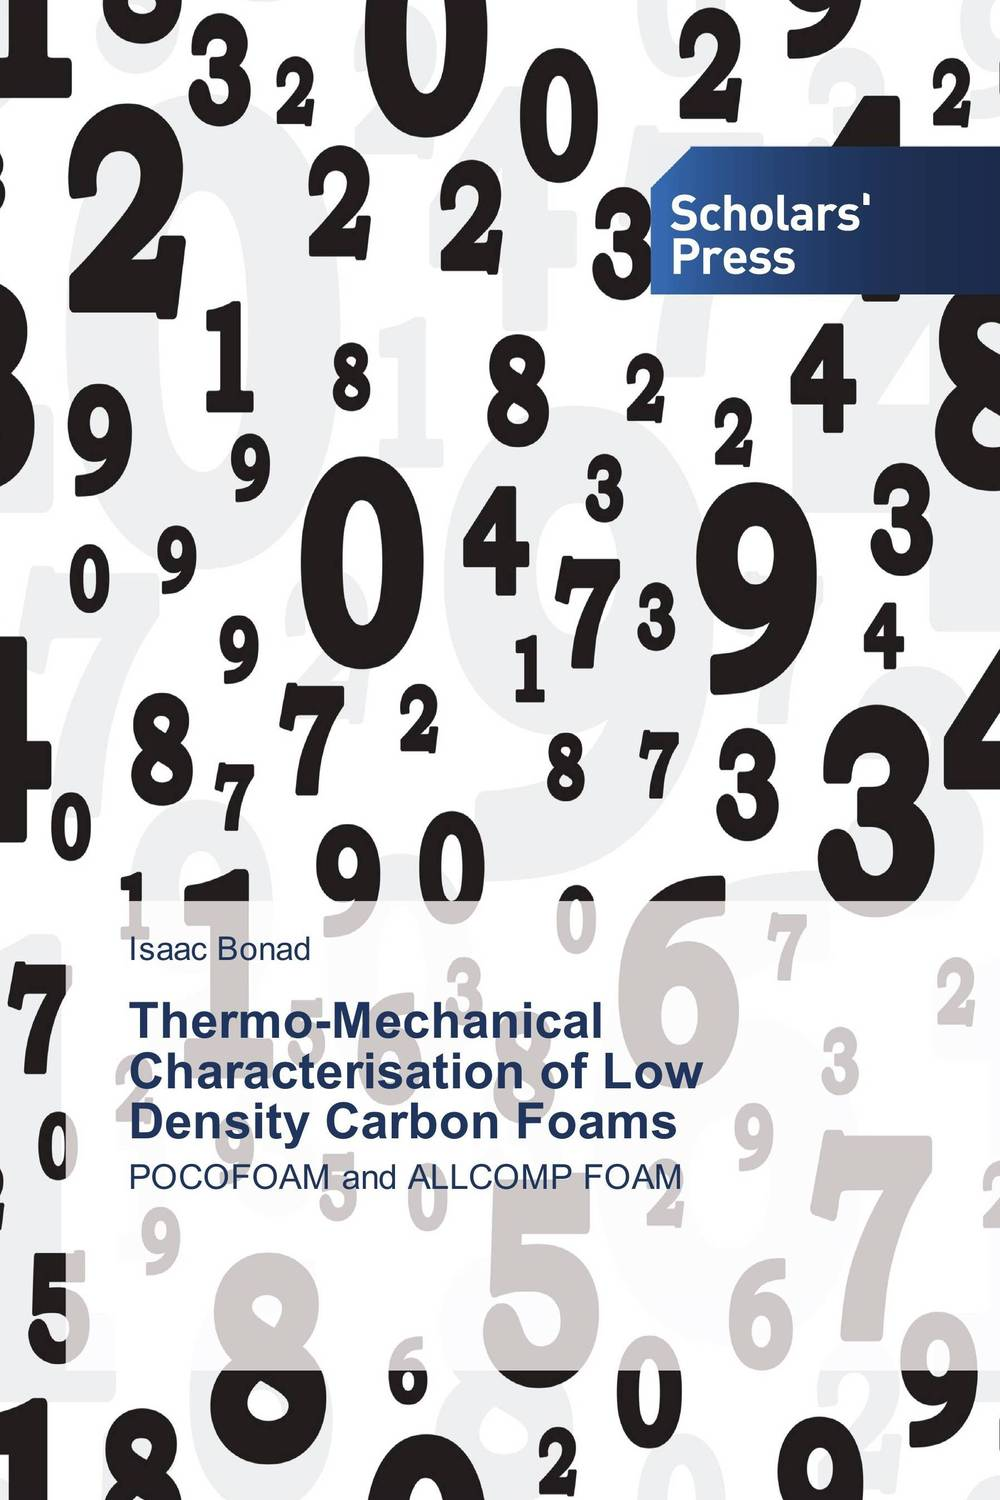 Thermo-Mechanical Characterisation of Low Density Carbon Foams